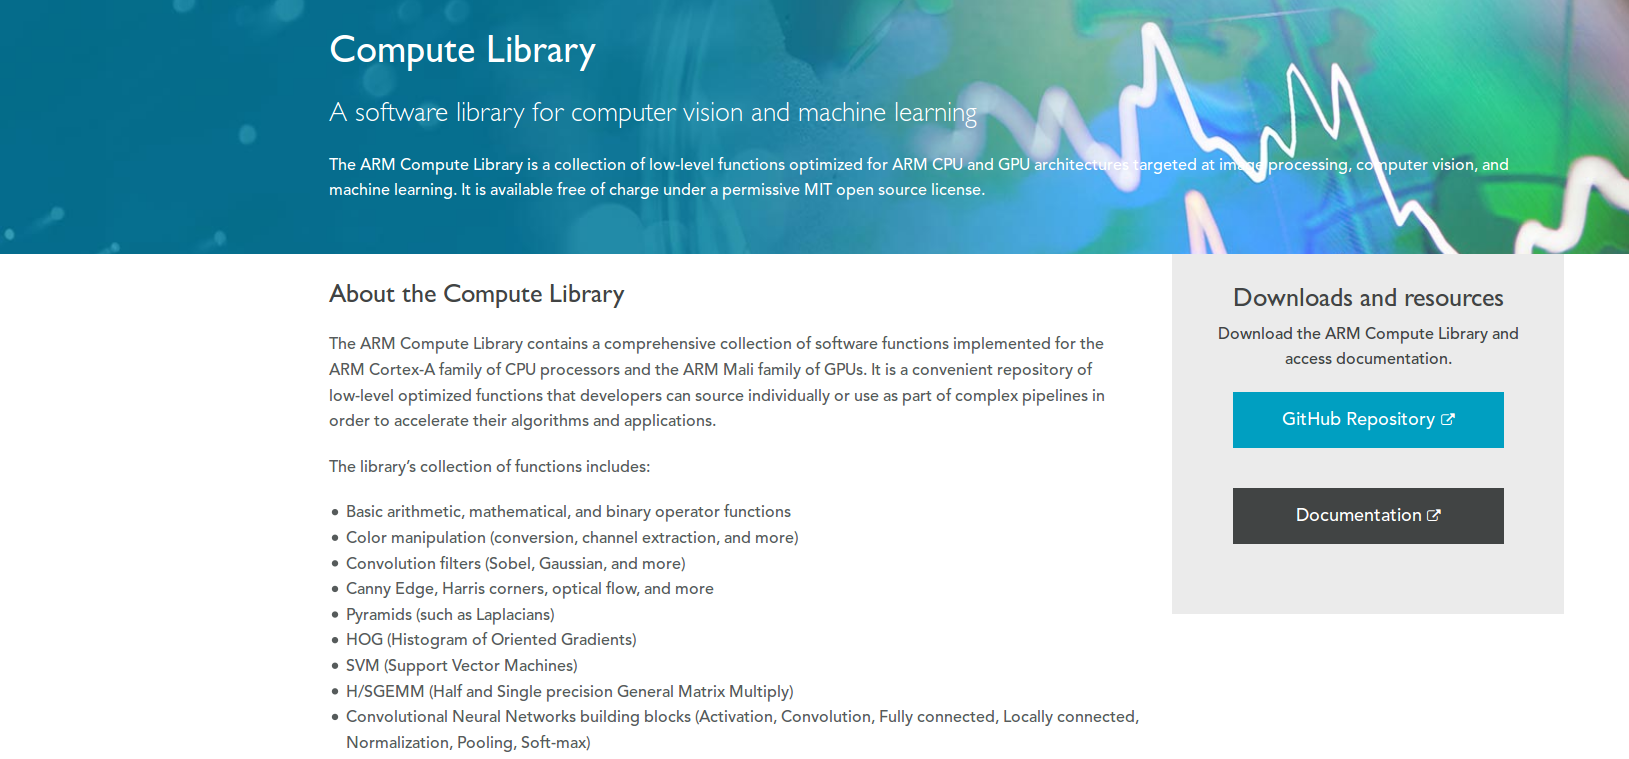 Compute Library on the Arm Developer website